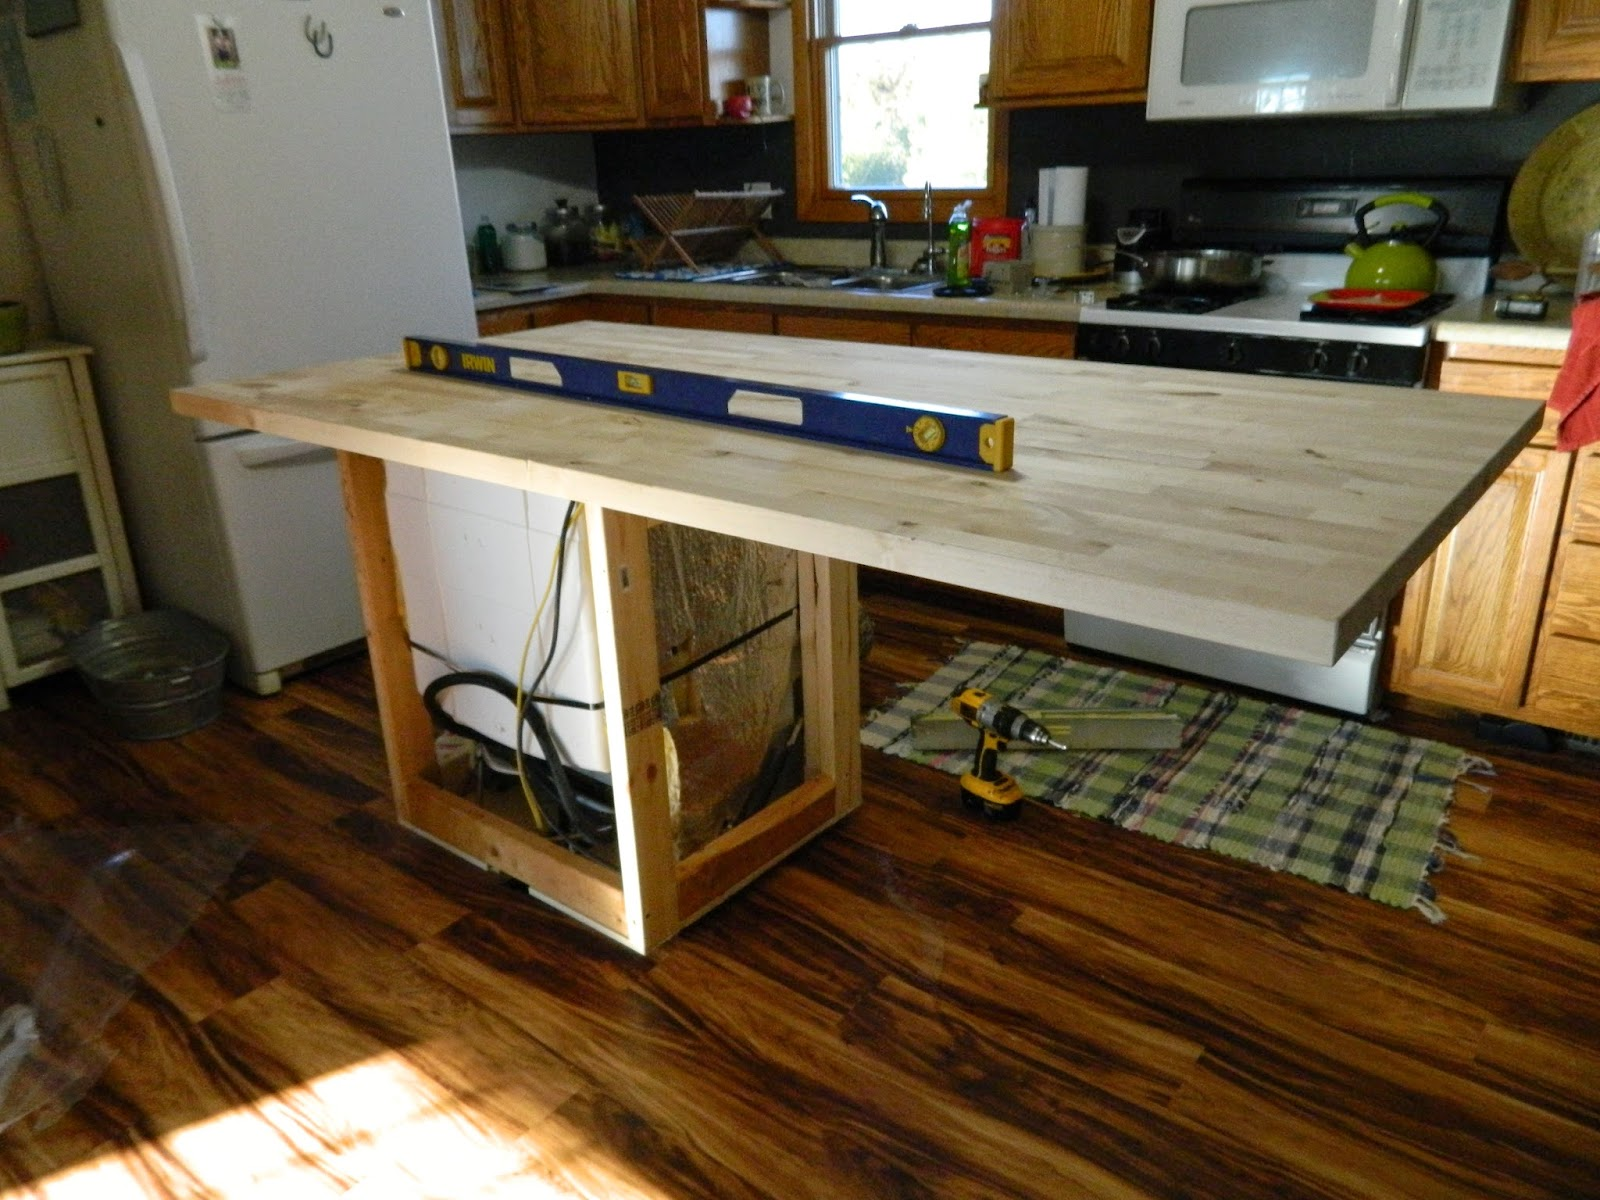 Countertop Dishwasher Craigslist : Then while Cowboy put legs on the end. I started the process of oiling ...